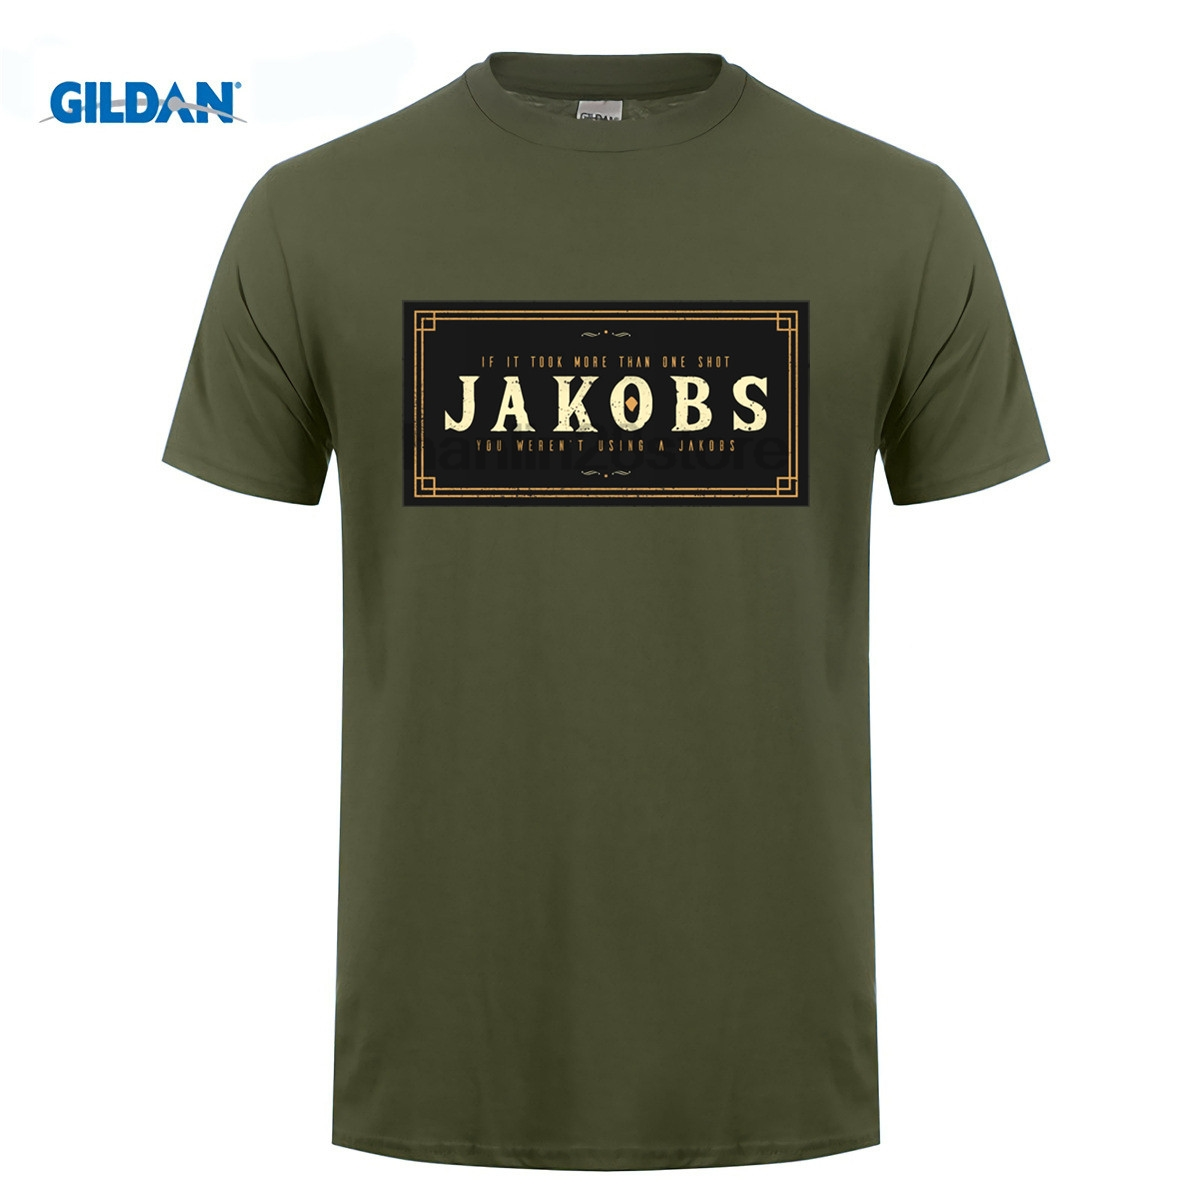 GILDAN <font><b>Borderlands</b></font> Jakobs T Shirt image